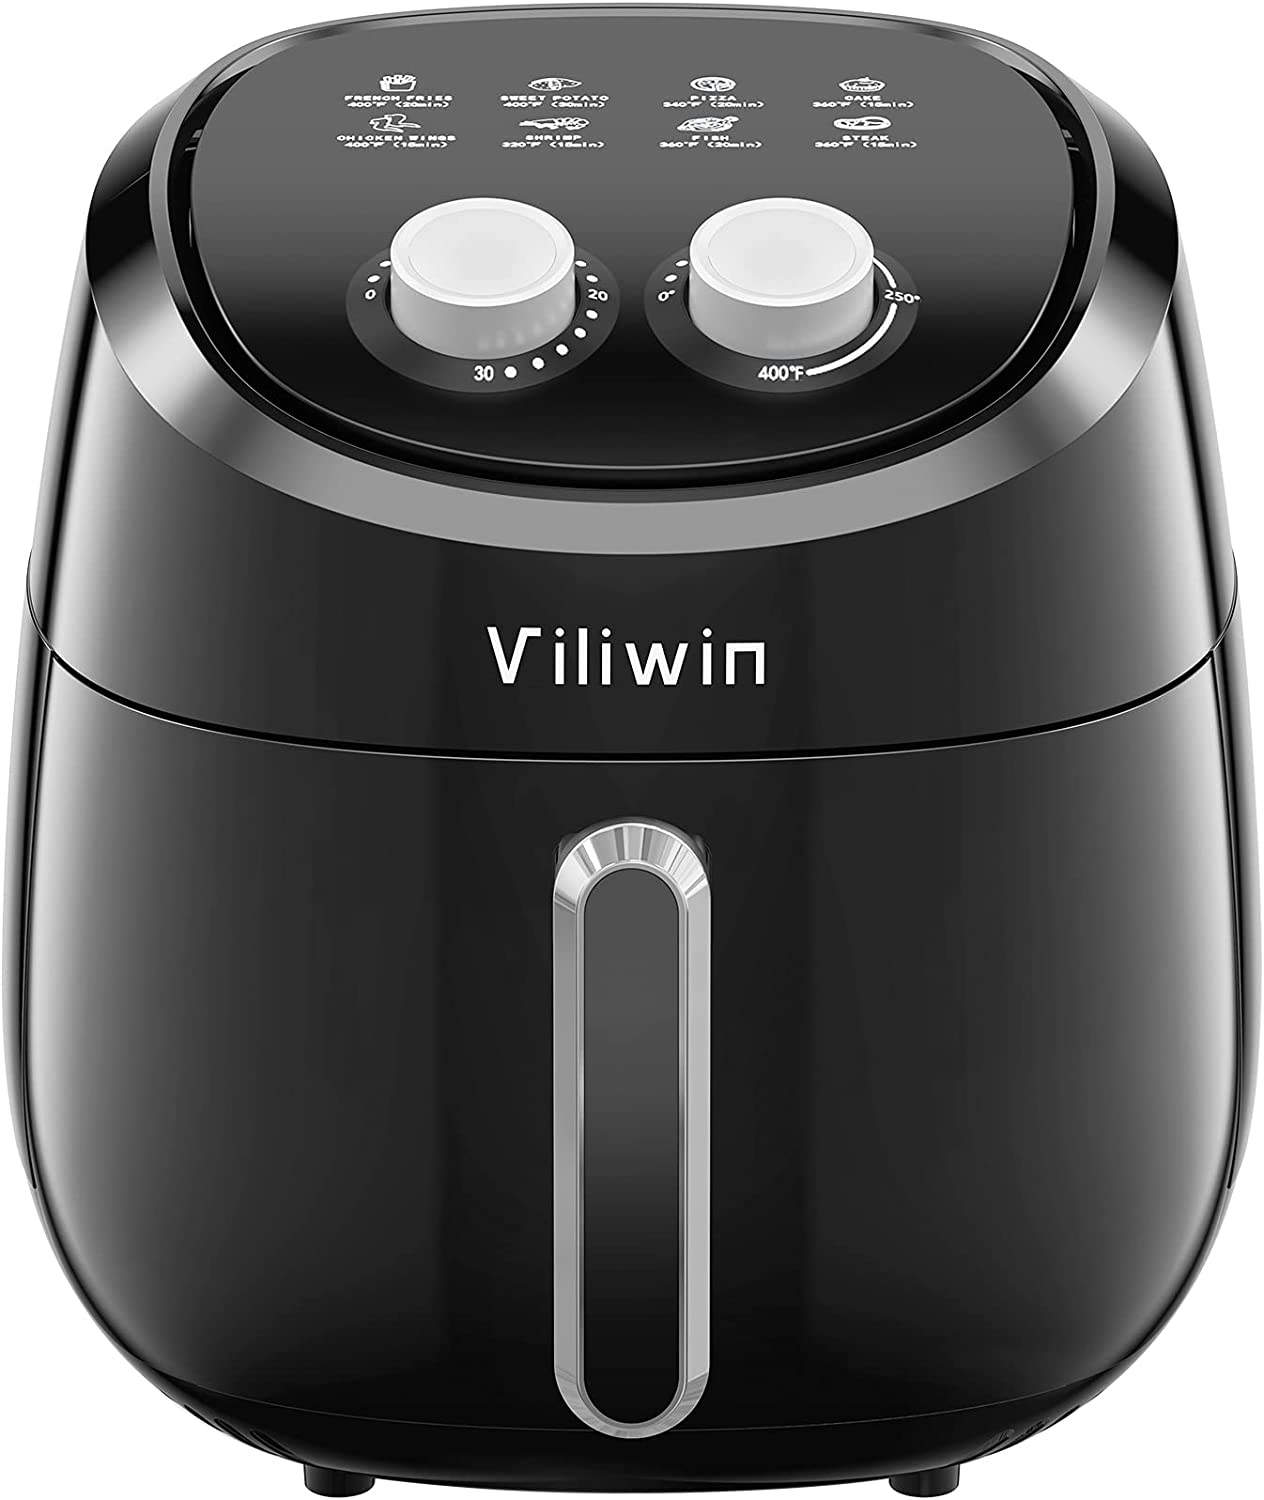 Air Fryer Oven ,4.2QT?Oil-free?8-in-1 ,Electric Hot Oven Oilless Cooker, ETL/FDA Listed,Dishwasher Safe ,Nonstick,1400W,Prime Smart Top Rated Mini Air Fryer(Black)